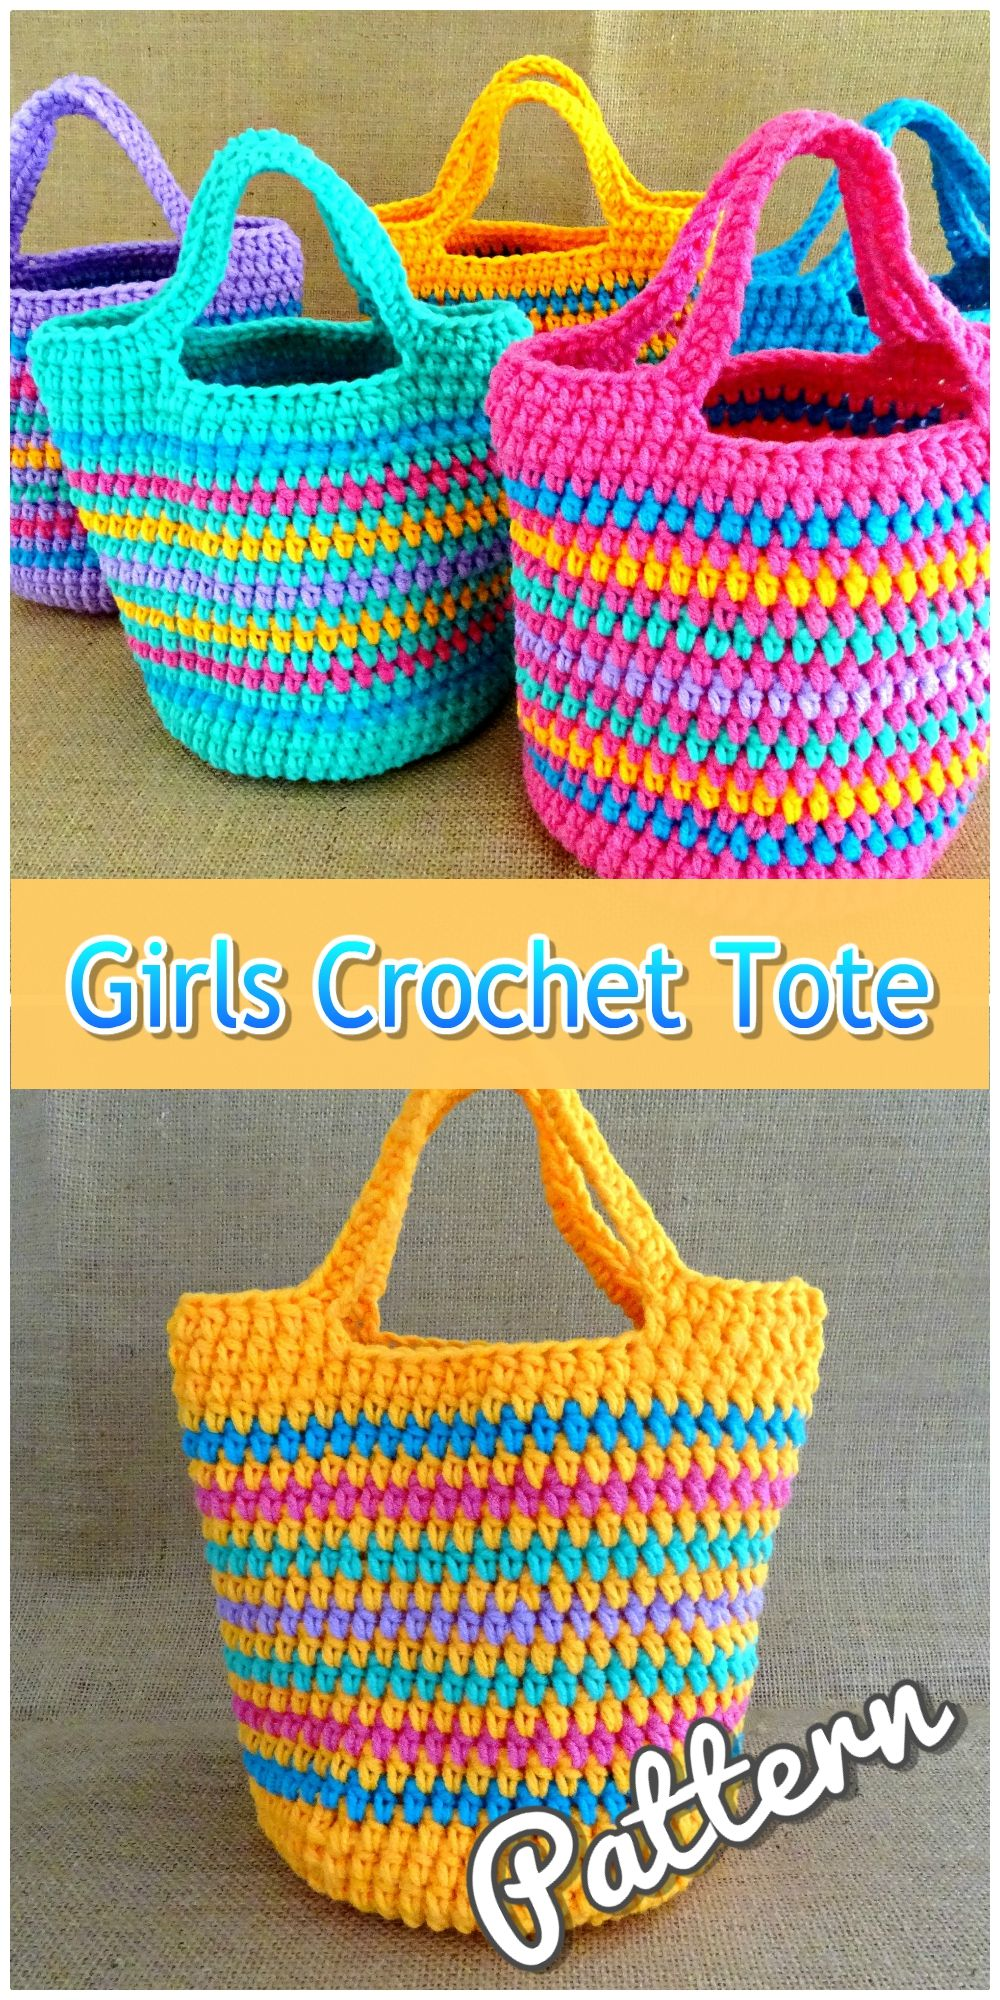 Make This S Crochet Tote Bag Purse At Home With My Easy To